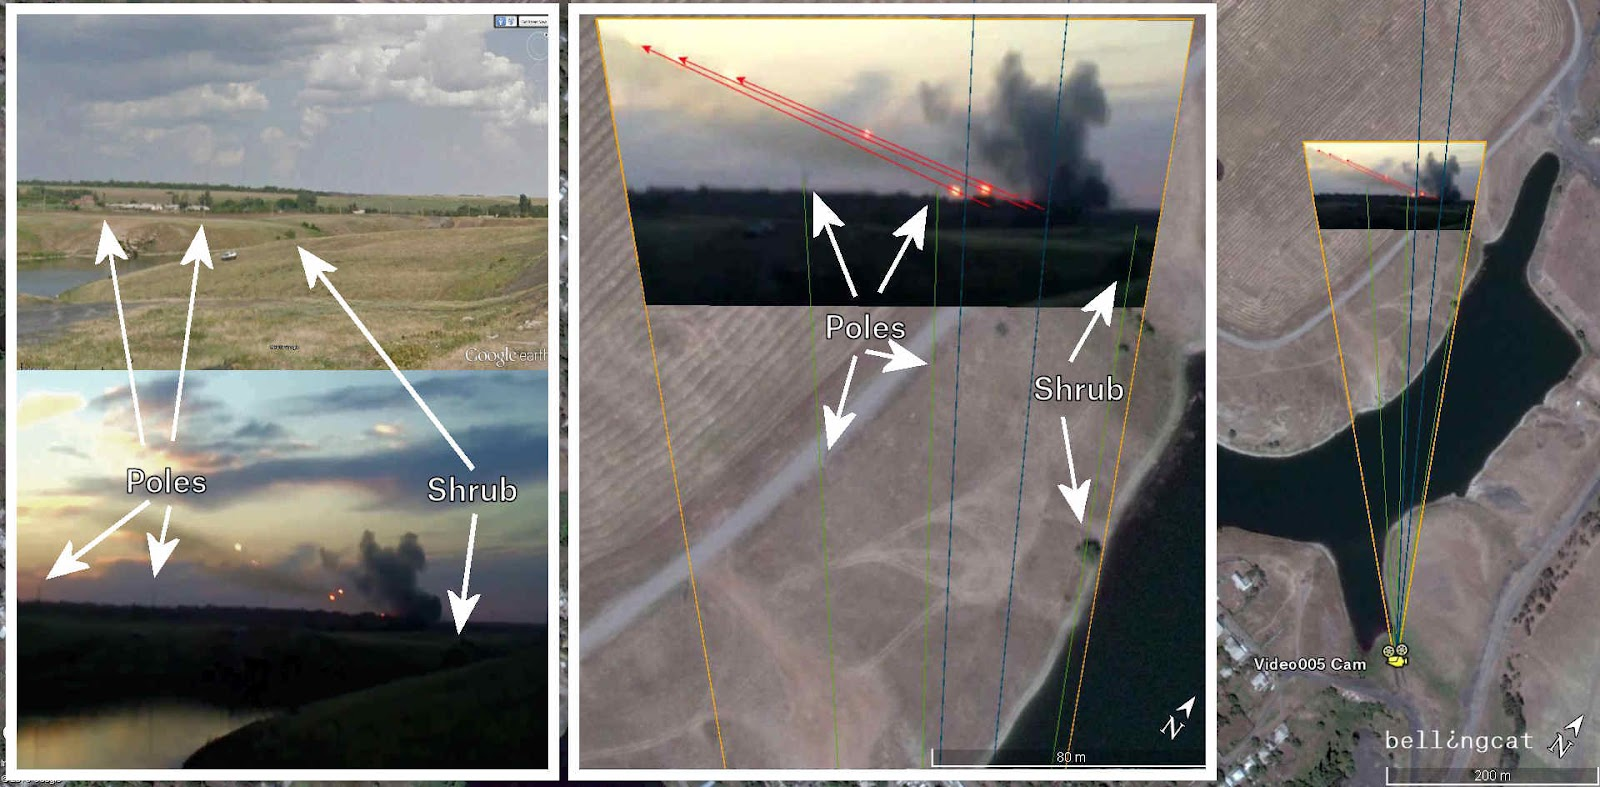 Camera location of Video005 – blue lines in the middle point toward the firing position